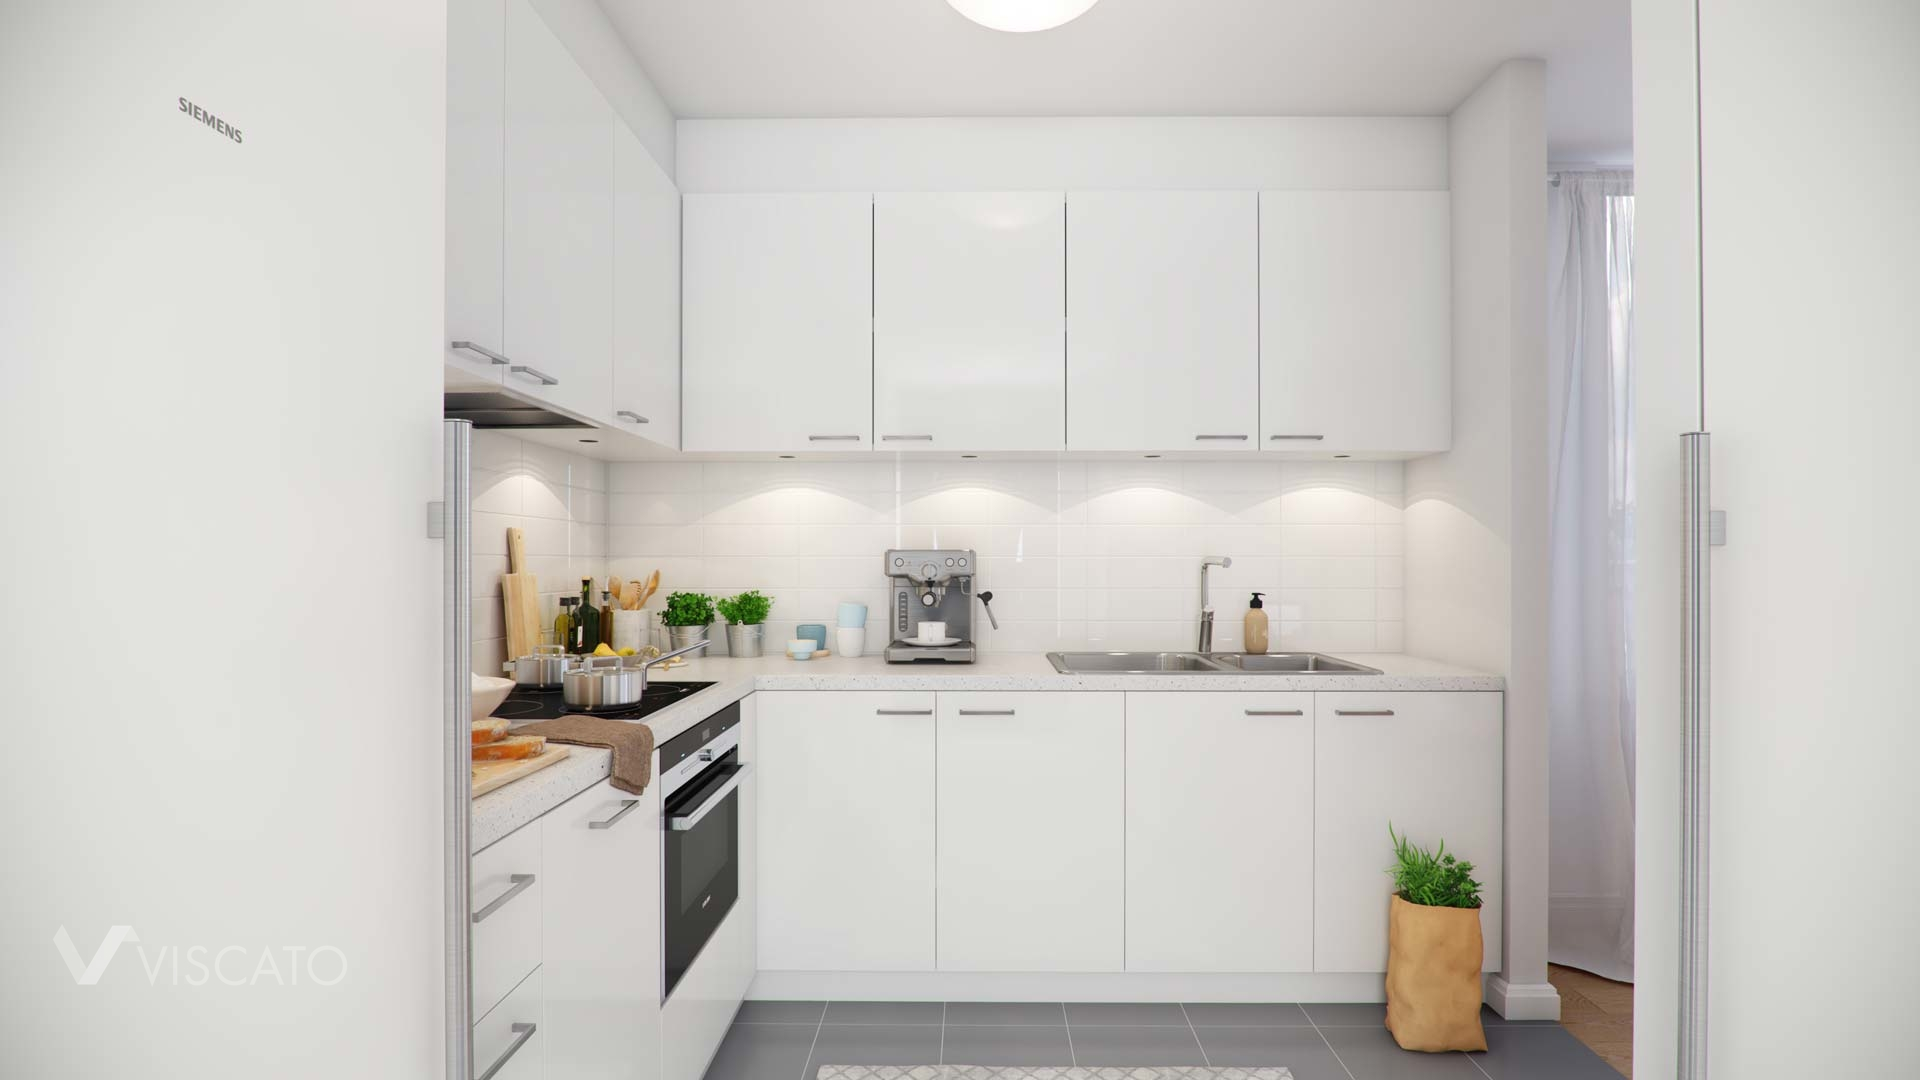 3d visualisation of a kitchen in a modern apartment